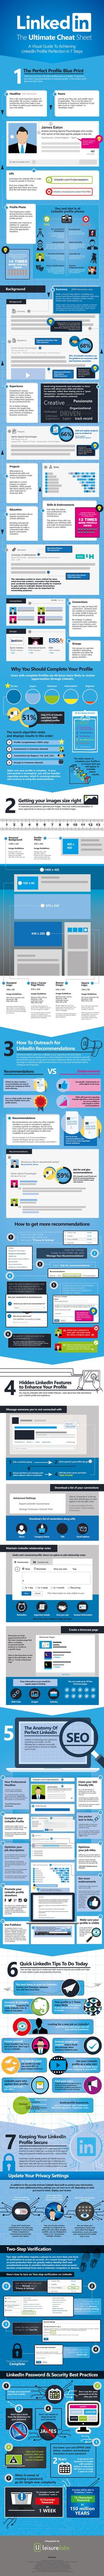 Build Your LinkedIn Profile From Start to FinishWith This Massive VisualGuide